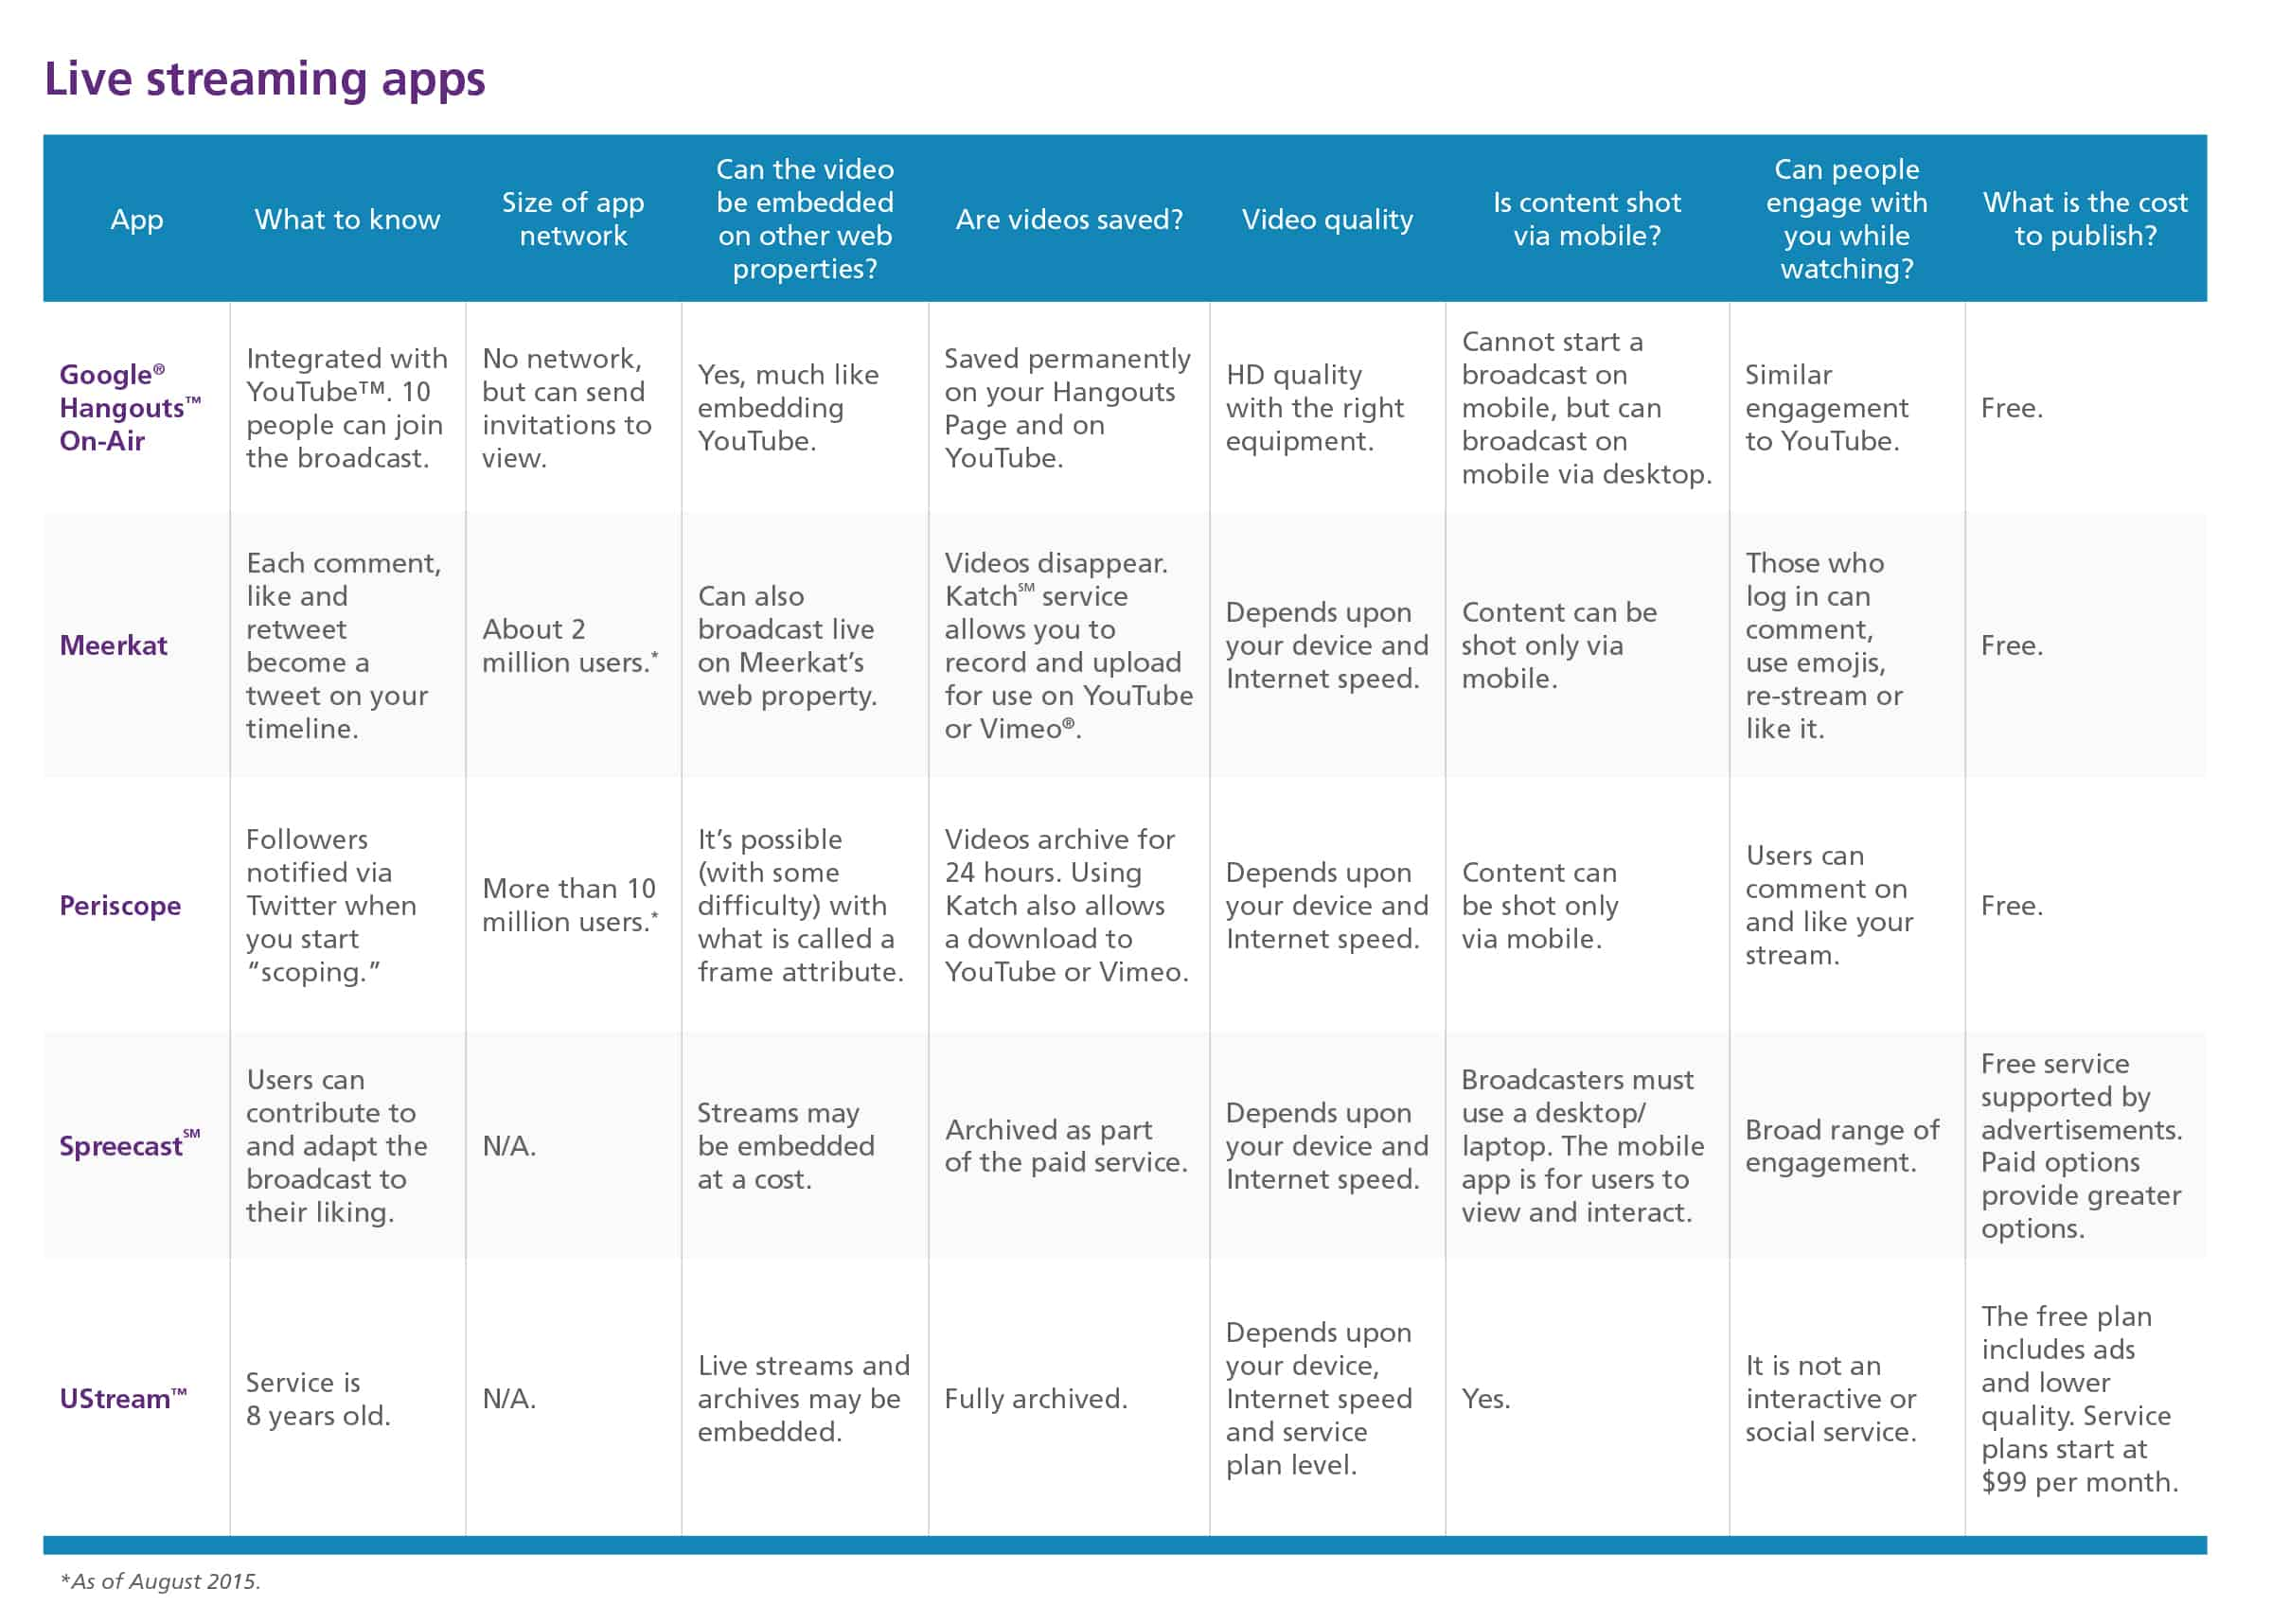 Table comparison of live streaming apps.